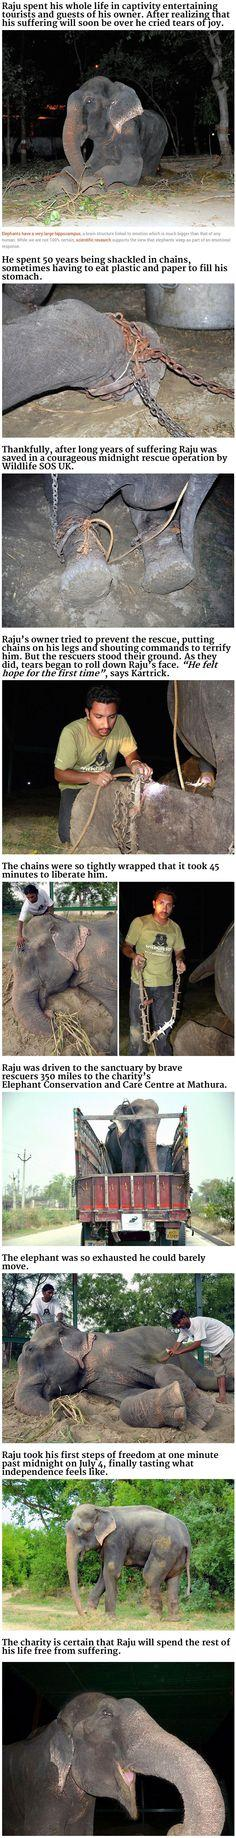 A rescued elephant: Elephants, Humanity Restored, Rescue Animal, Sad Animal, Animal Cruelty Stories, Animal Stories, Rescued Elephant, Elephant Cries